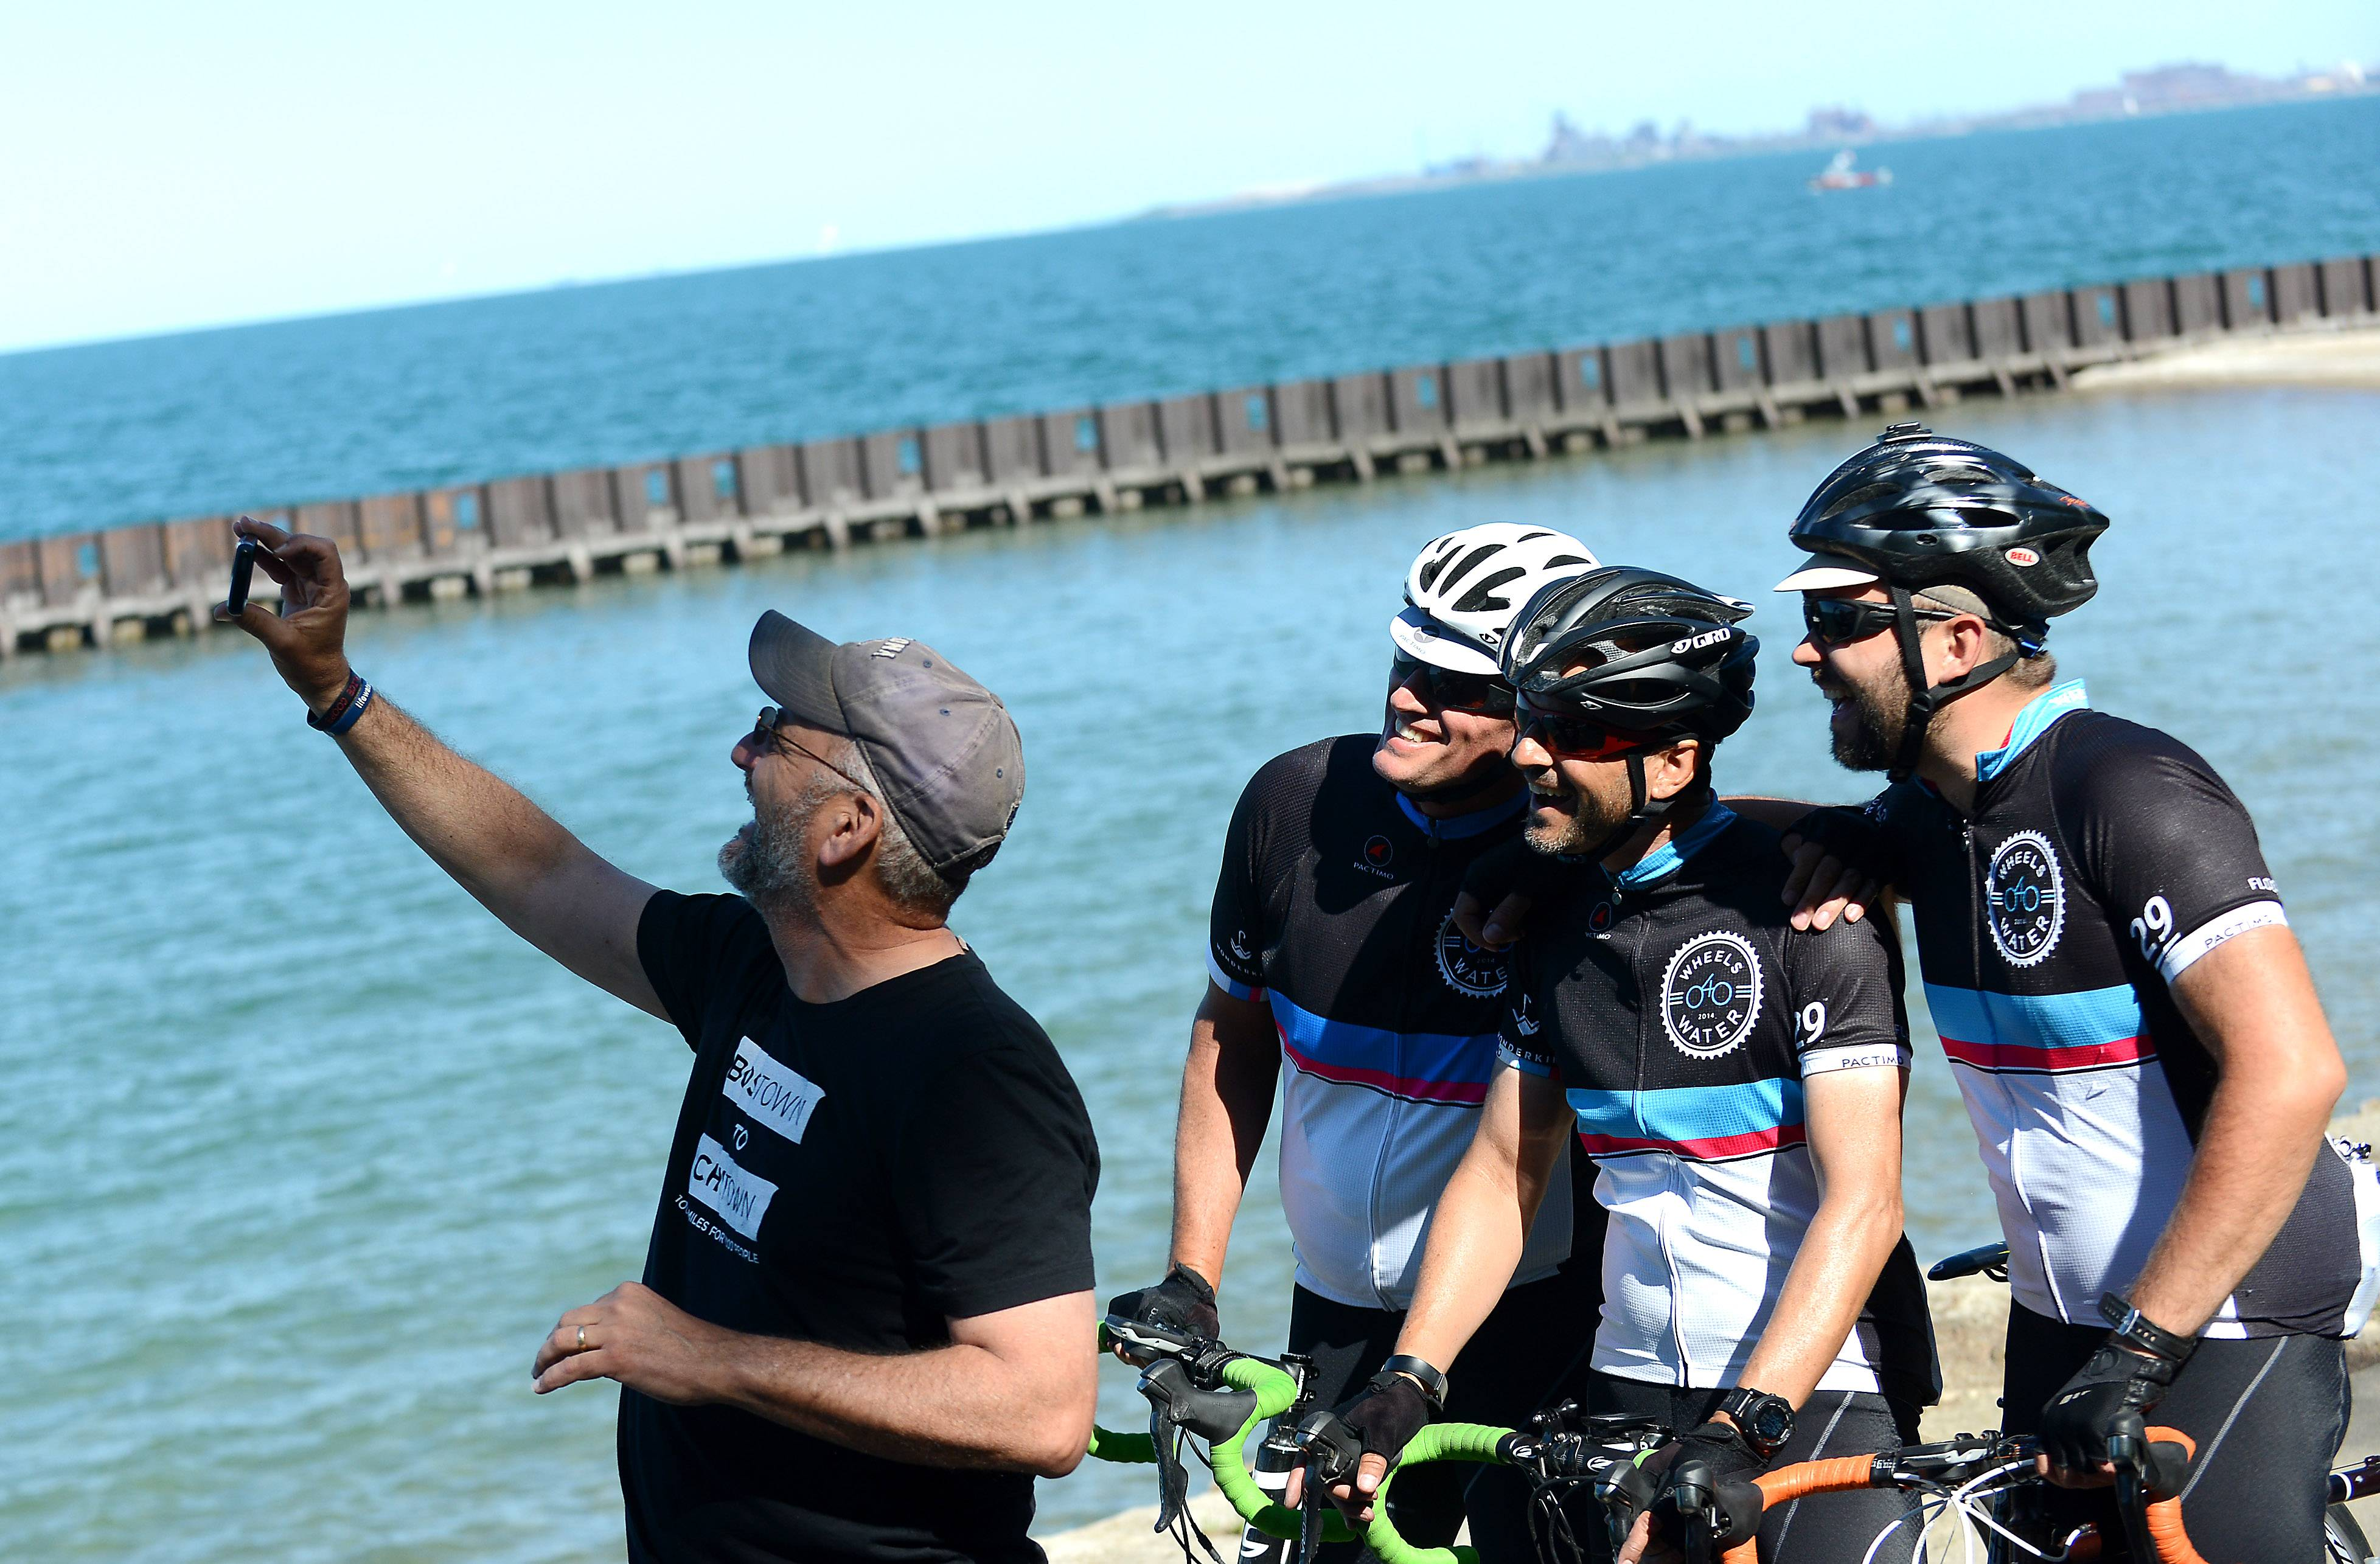 Tony Narducci, who captained the support van for the Wheels4Water ride, takes a selfie with riders Justin Ahrens, left, Brian MacDonald and Ryan Connary.